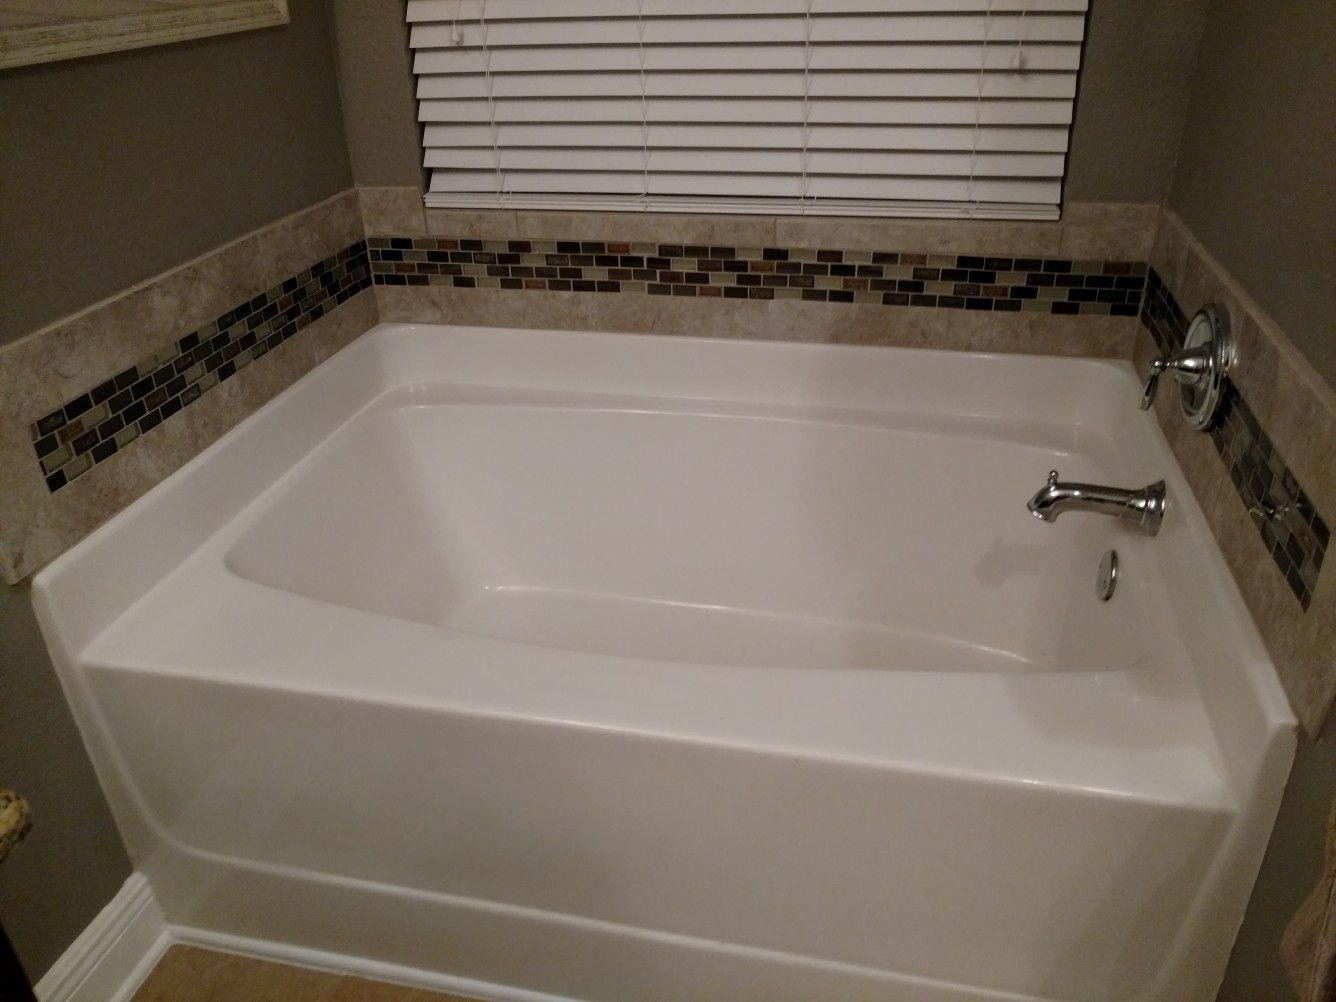 Back Solah Around Garden Tub Tub Remodel Master Bath Remodel Garden Tub